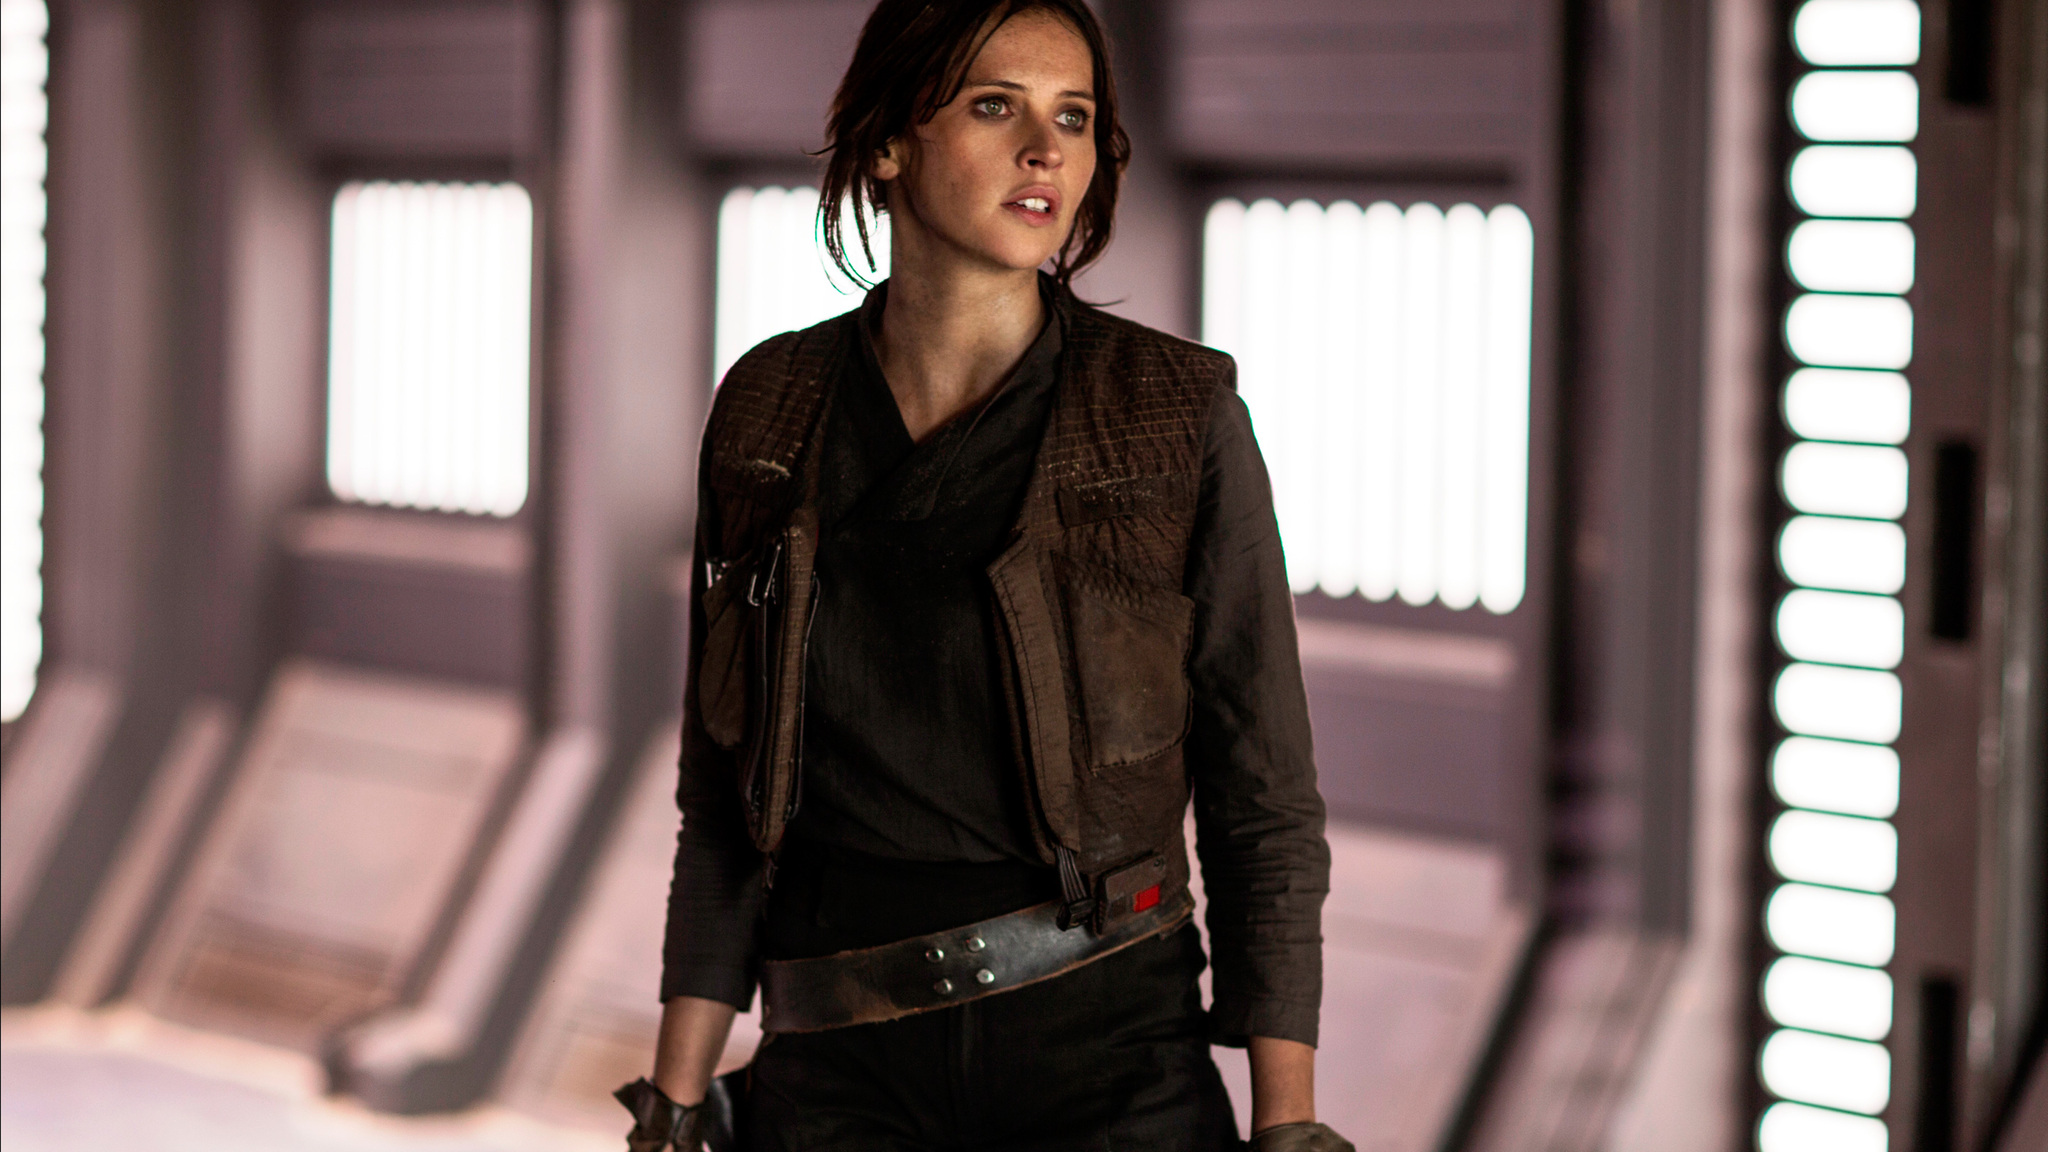 2048x1152 Jyn Erso 2048x1152 Resolution Hd 4k Wallpapers Images